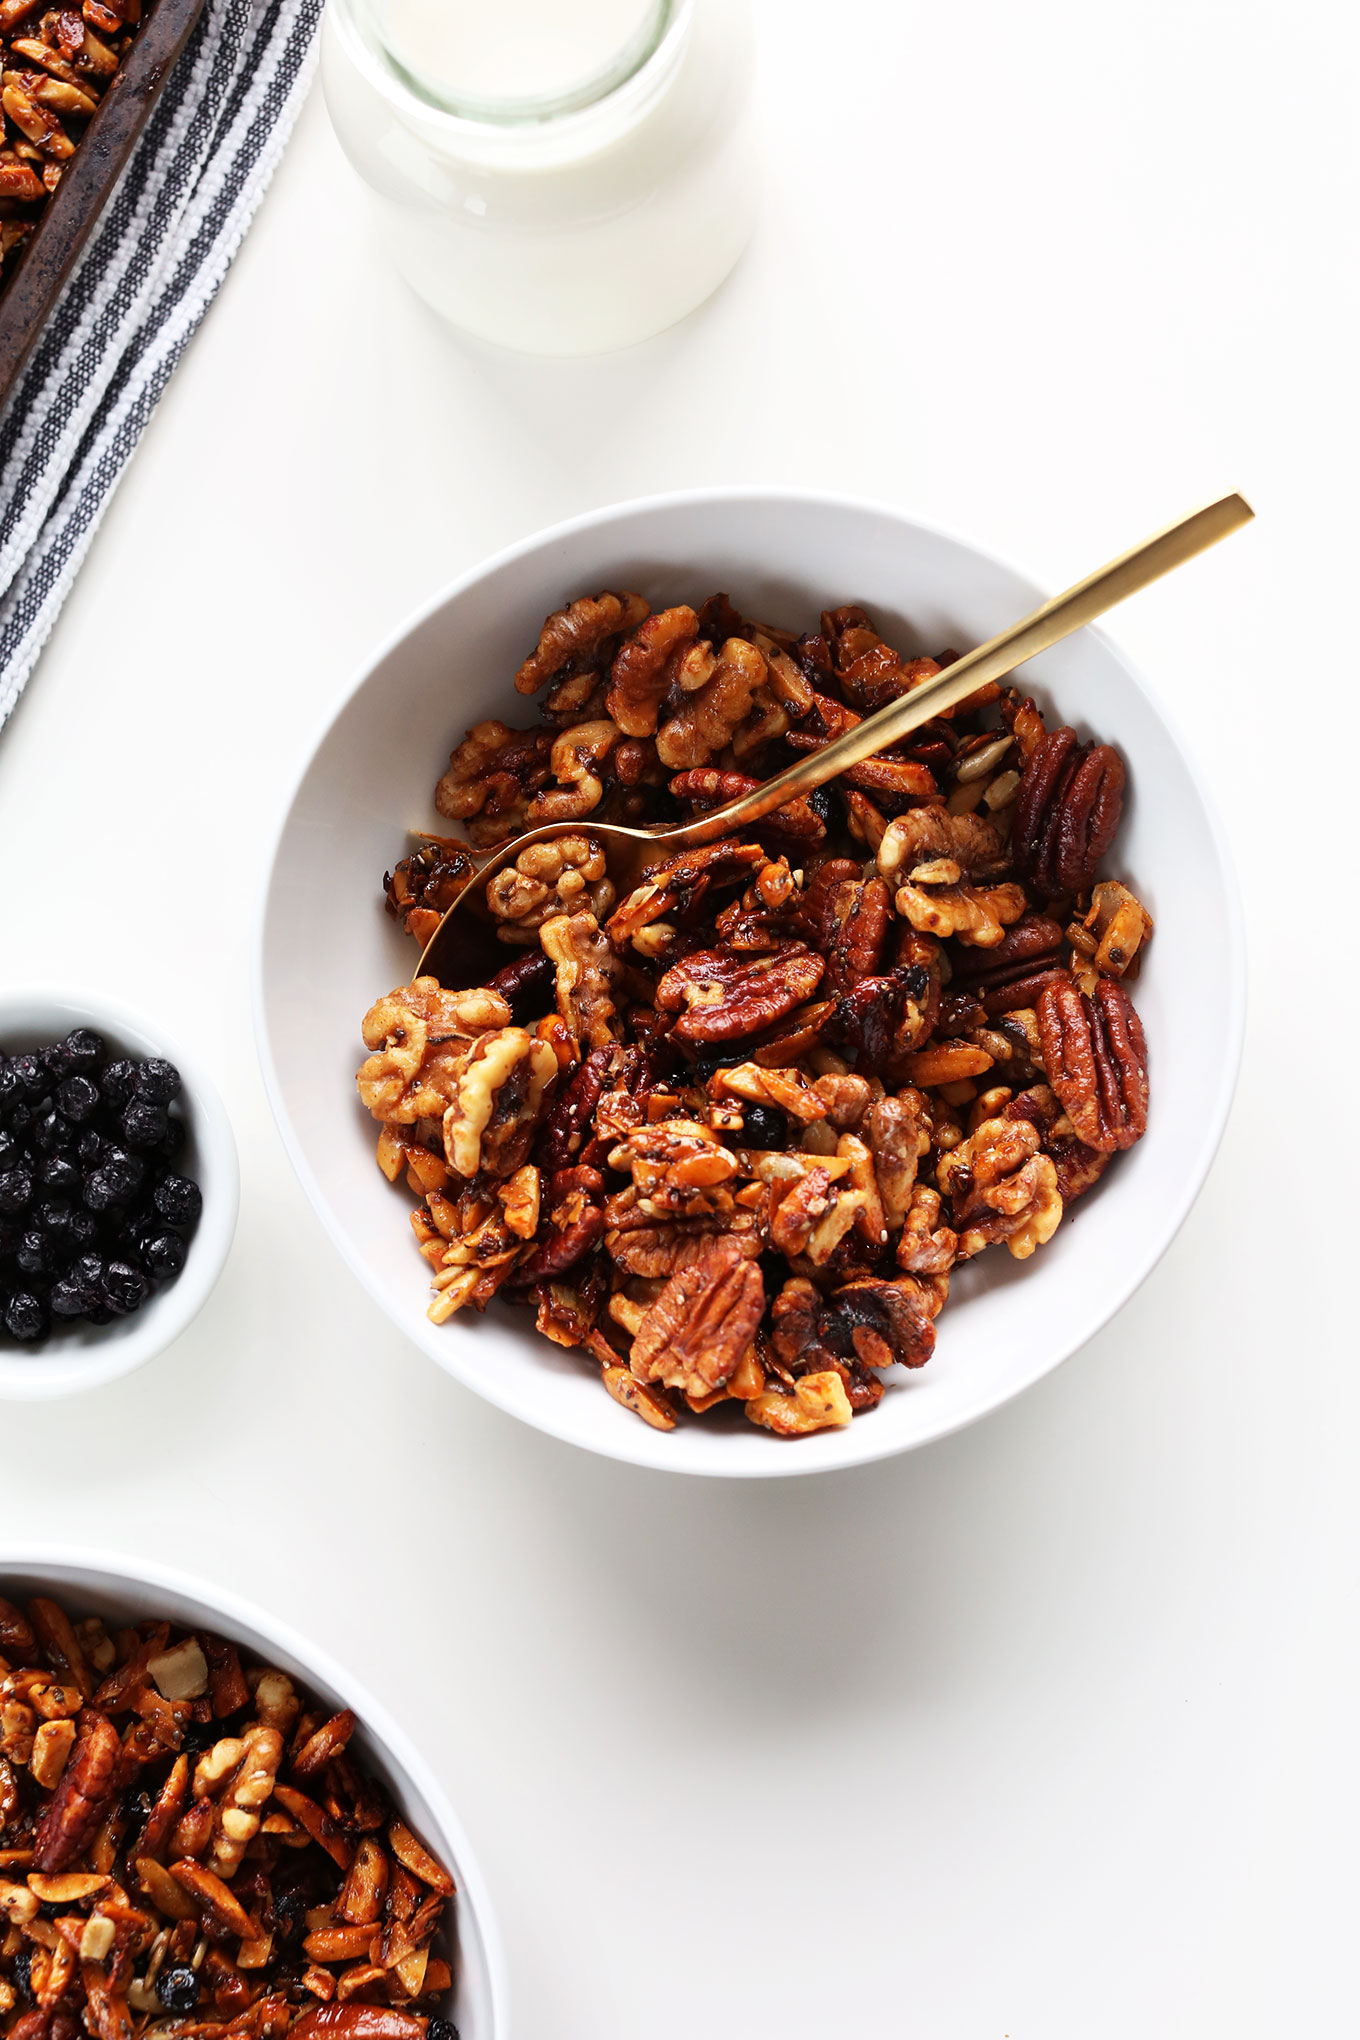 Top down shot of a bowl of our delicious Grain-Free Granola recipe